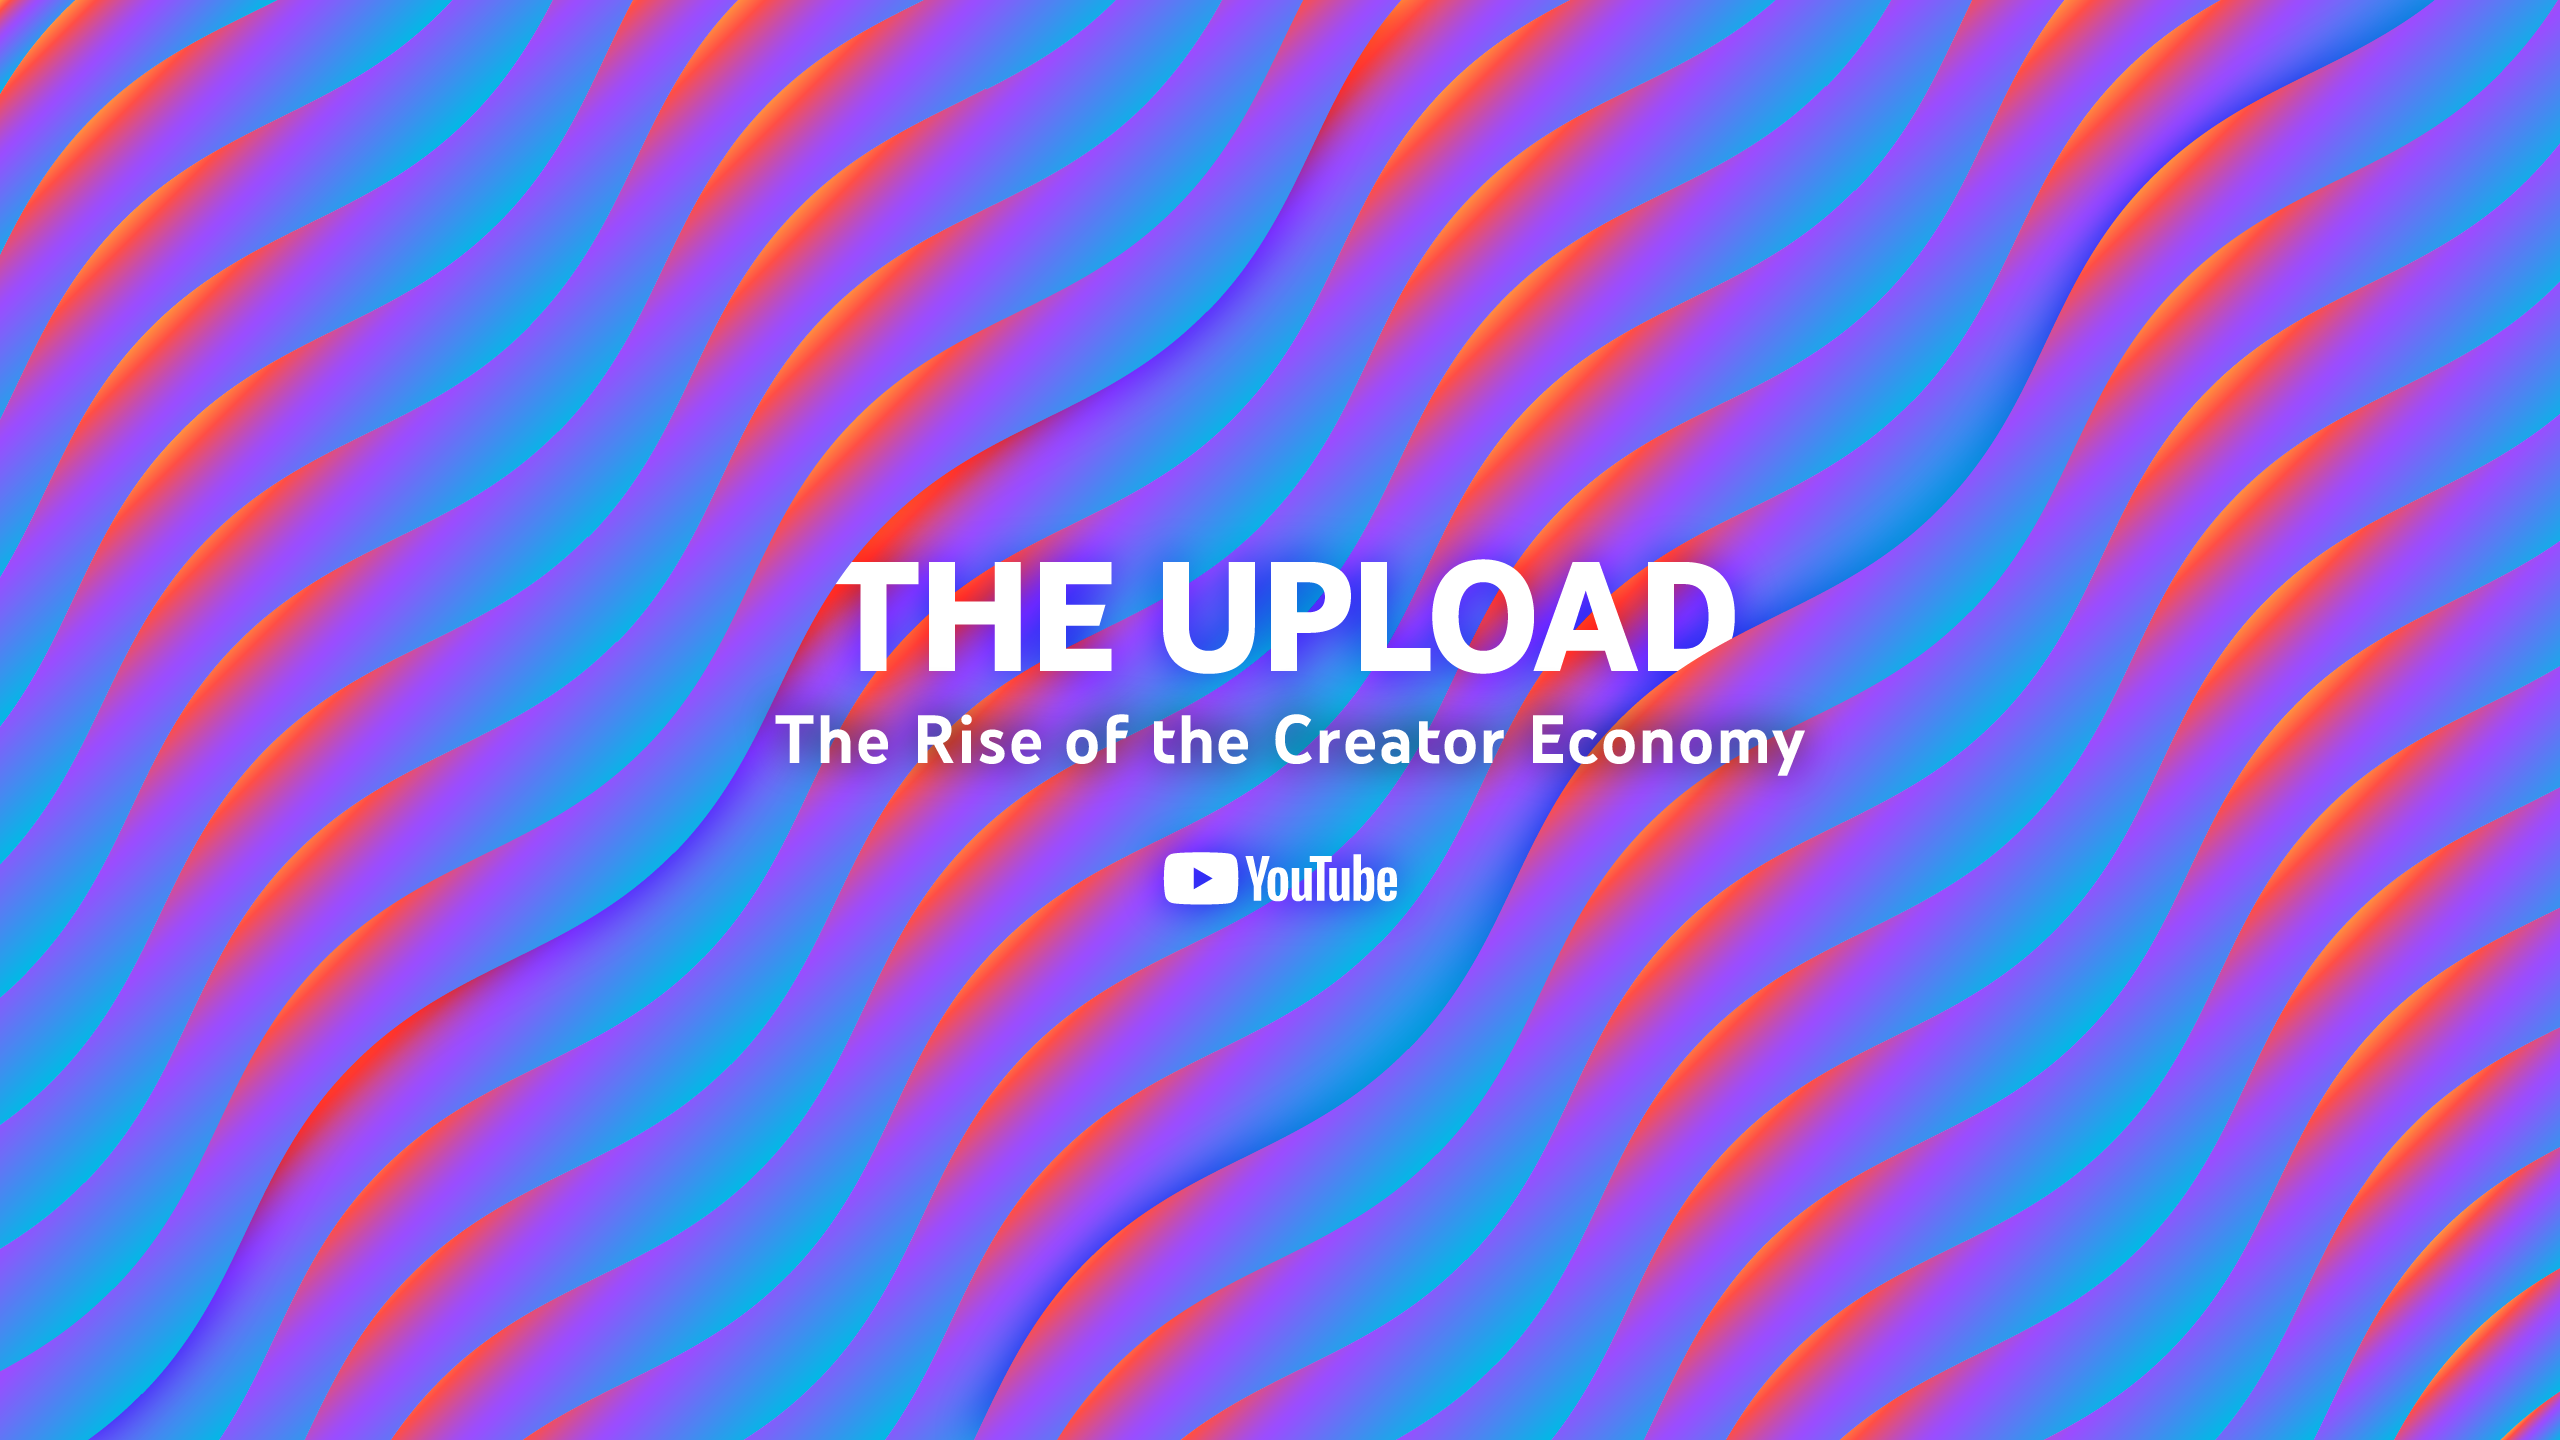 """Introducing """"The Upload: The Rise of the Creator Economy,"""" the first podcast from YouTube"""